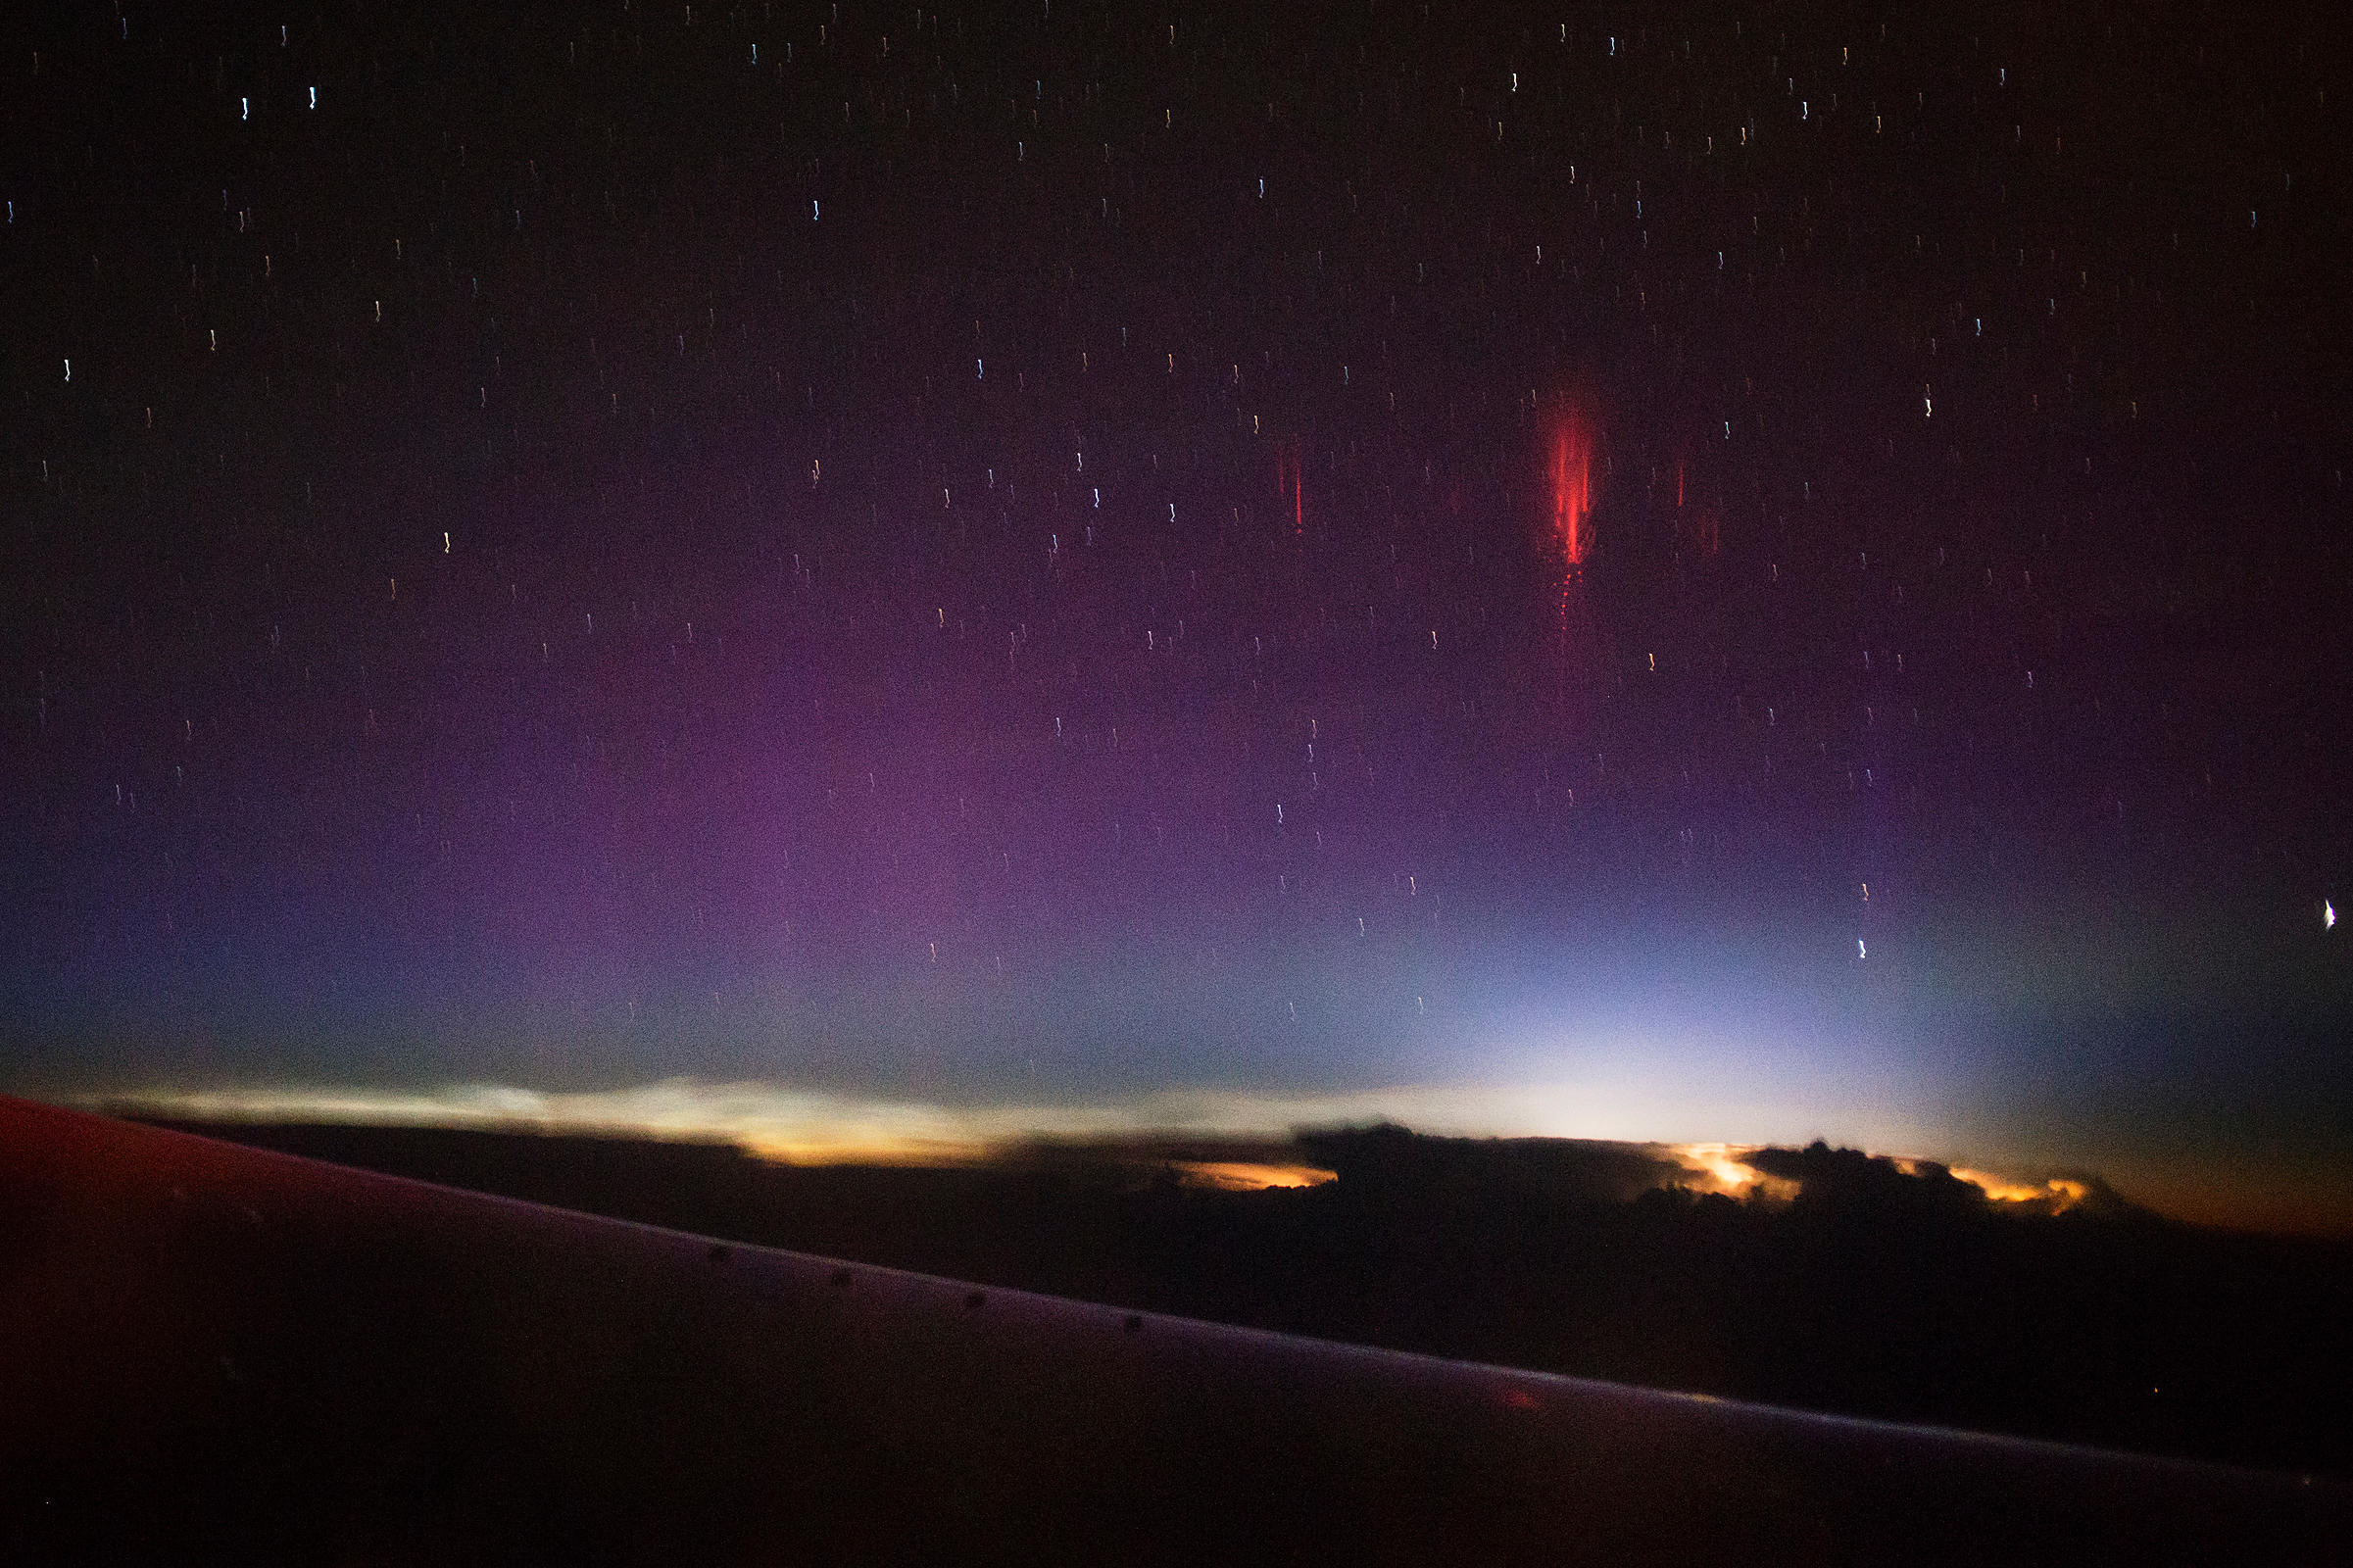 Sprite lightning photographed from a plane above USA in June 2014.